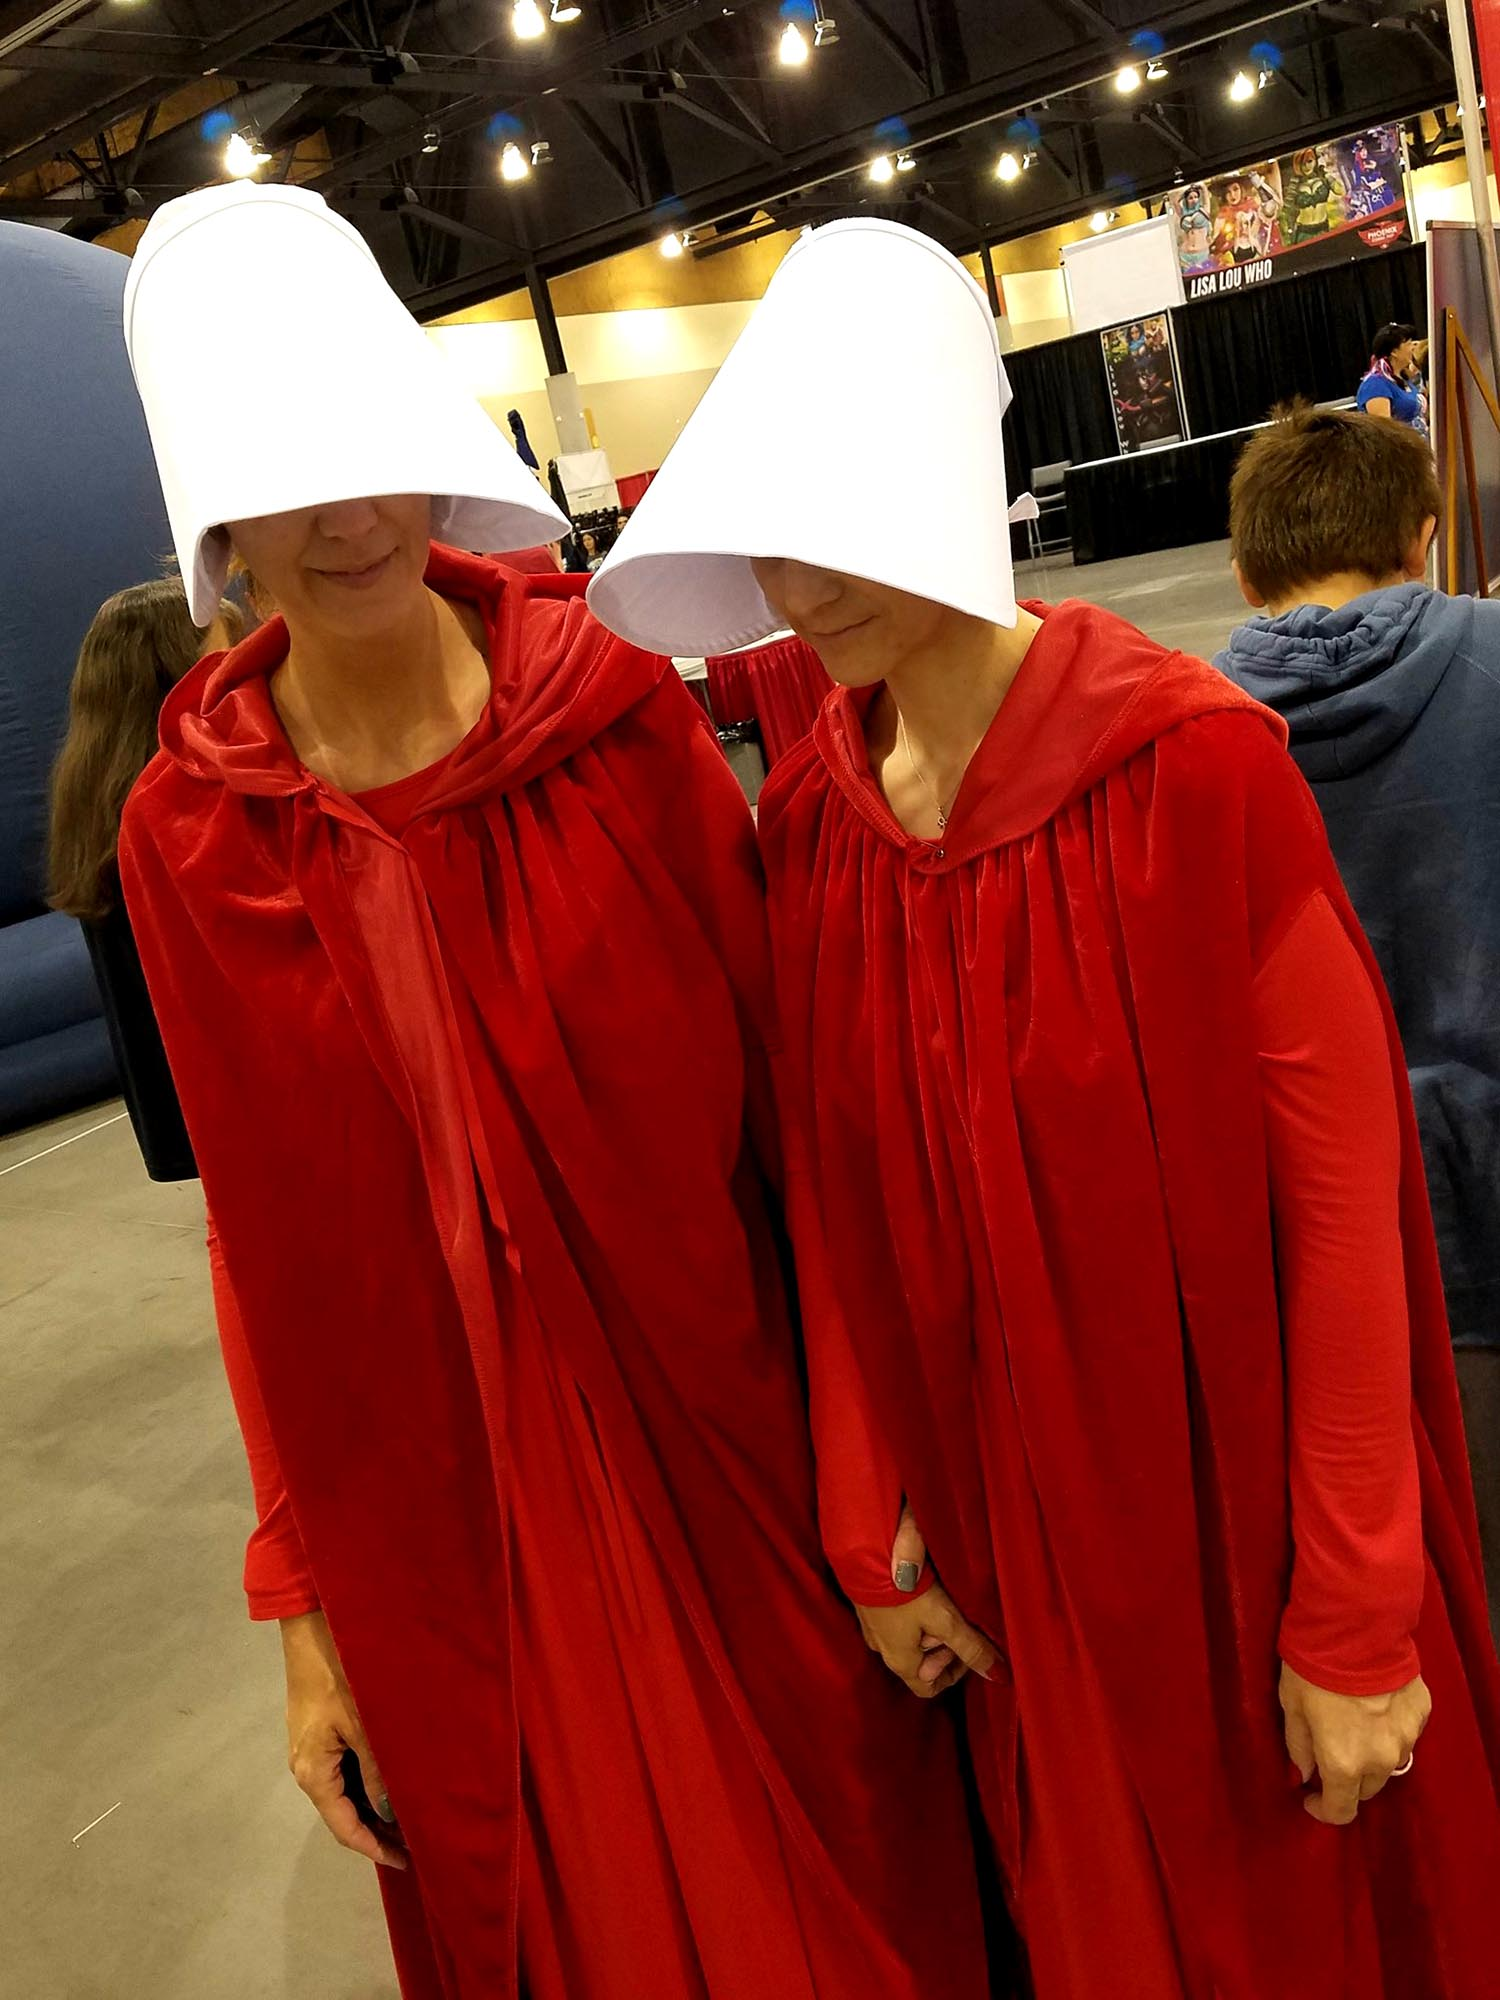 The Handmaid's Tale cosplay at Phoenix Comic Fest, Sunday, May 27, 2018, at the Phoenix Convention Center.